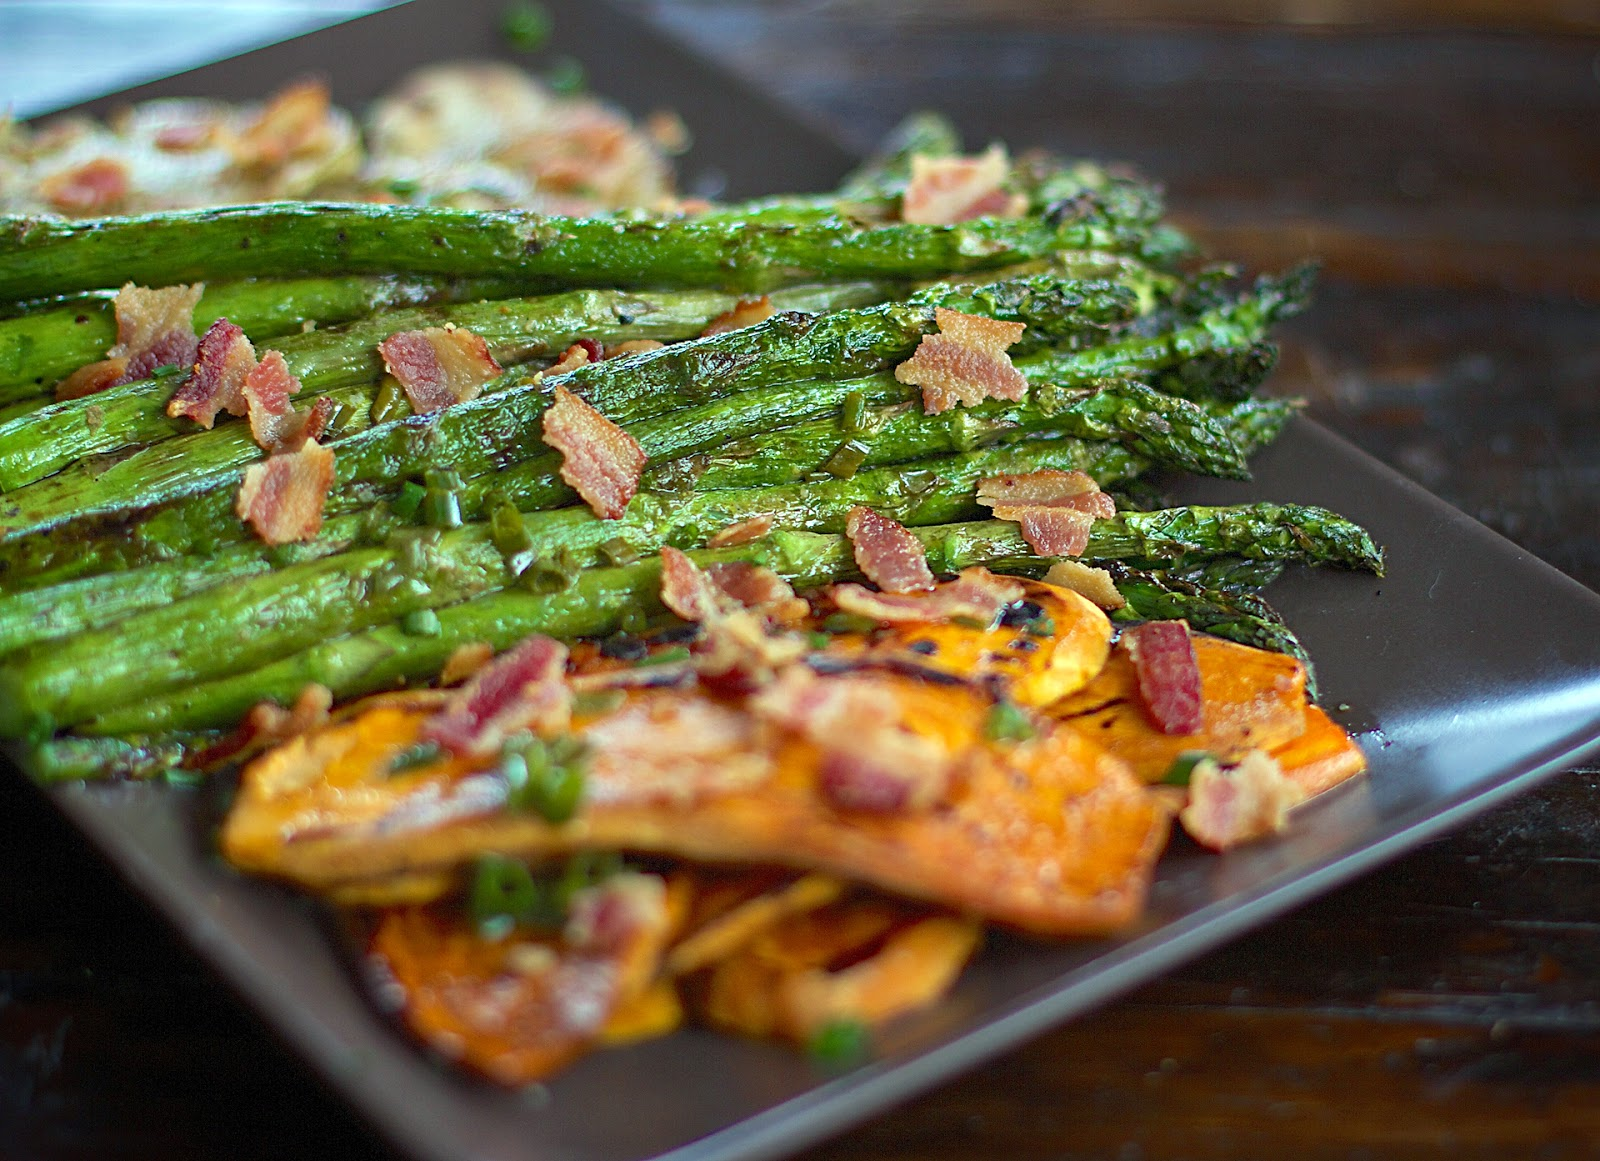 Grilled Asparagus + Potatoes with Bacon | Local Food Rocks